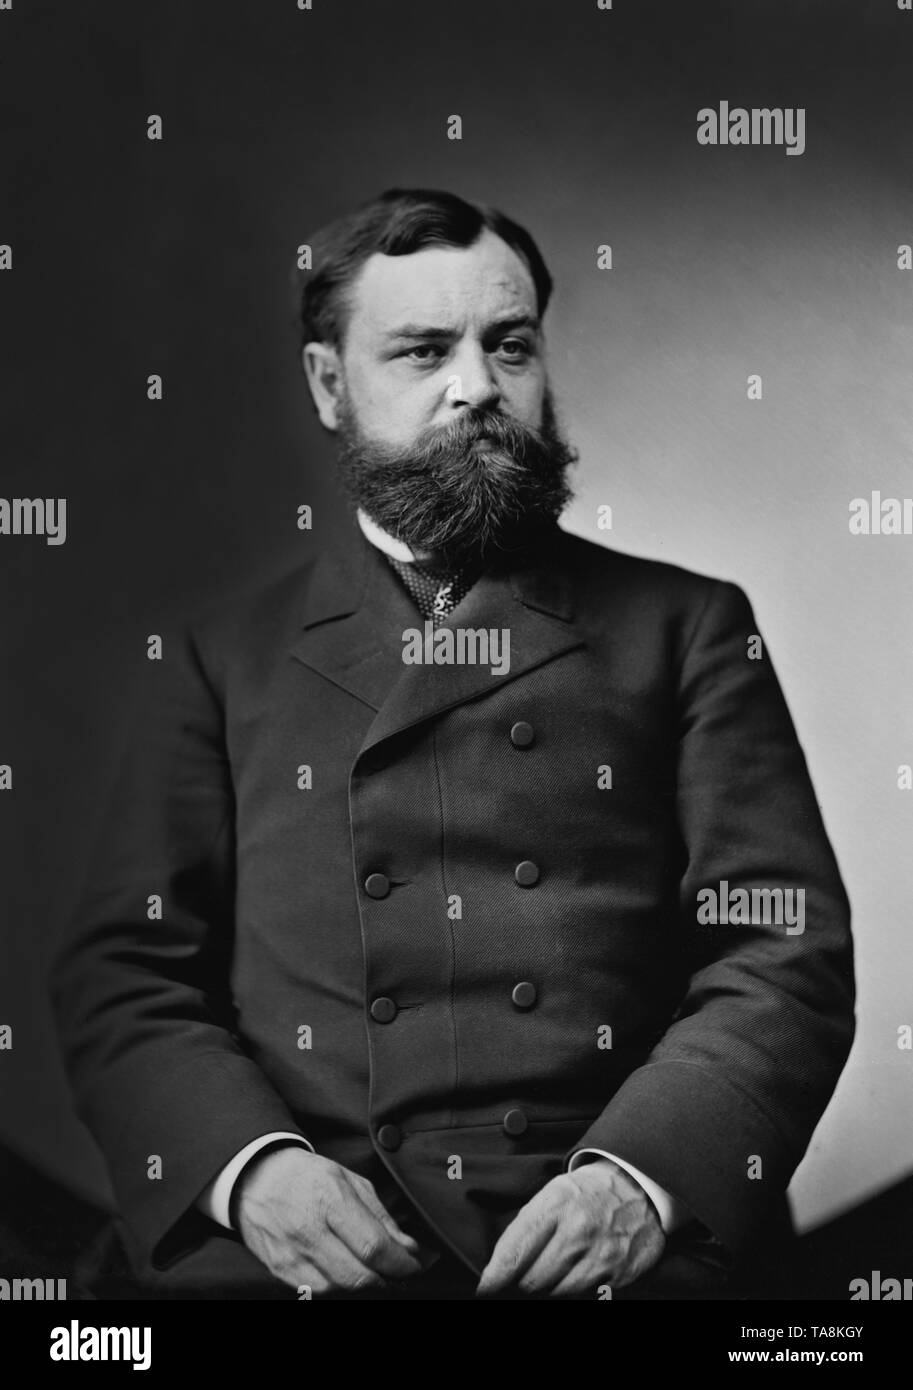 Robert Lincoln, Son of Abraham Lincoln, Half-Length Seated Portrait, 1870's - Stock Image